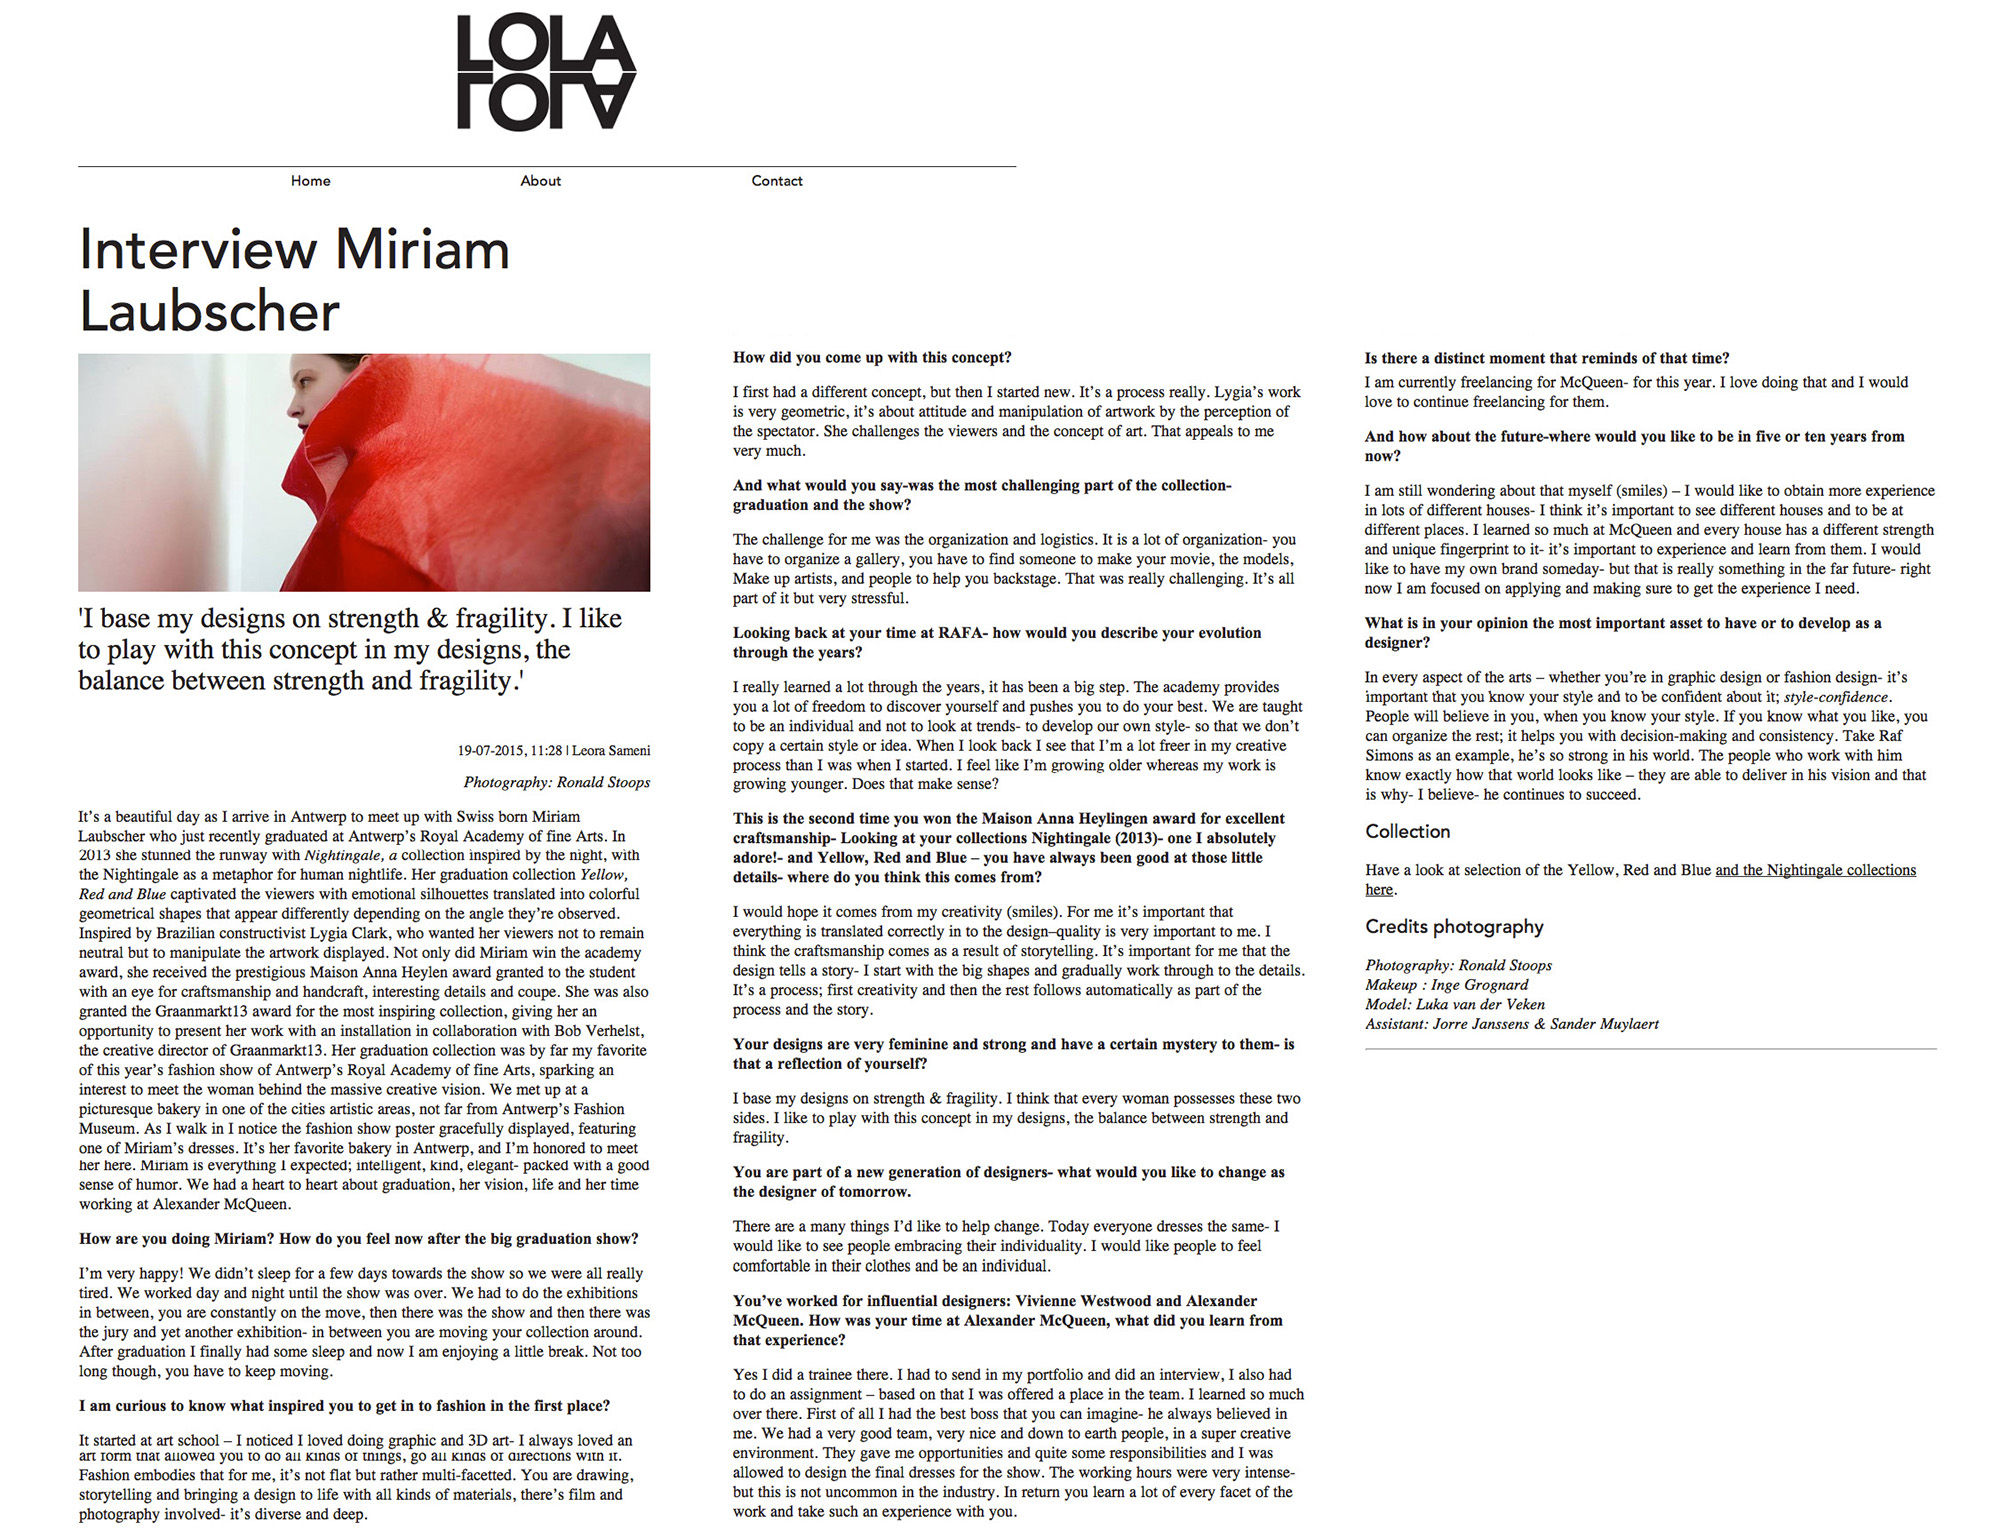 miriam laubscher press lola online blog interview